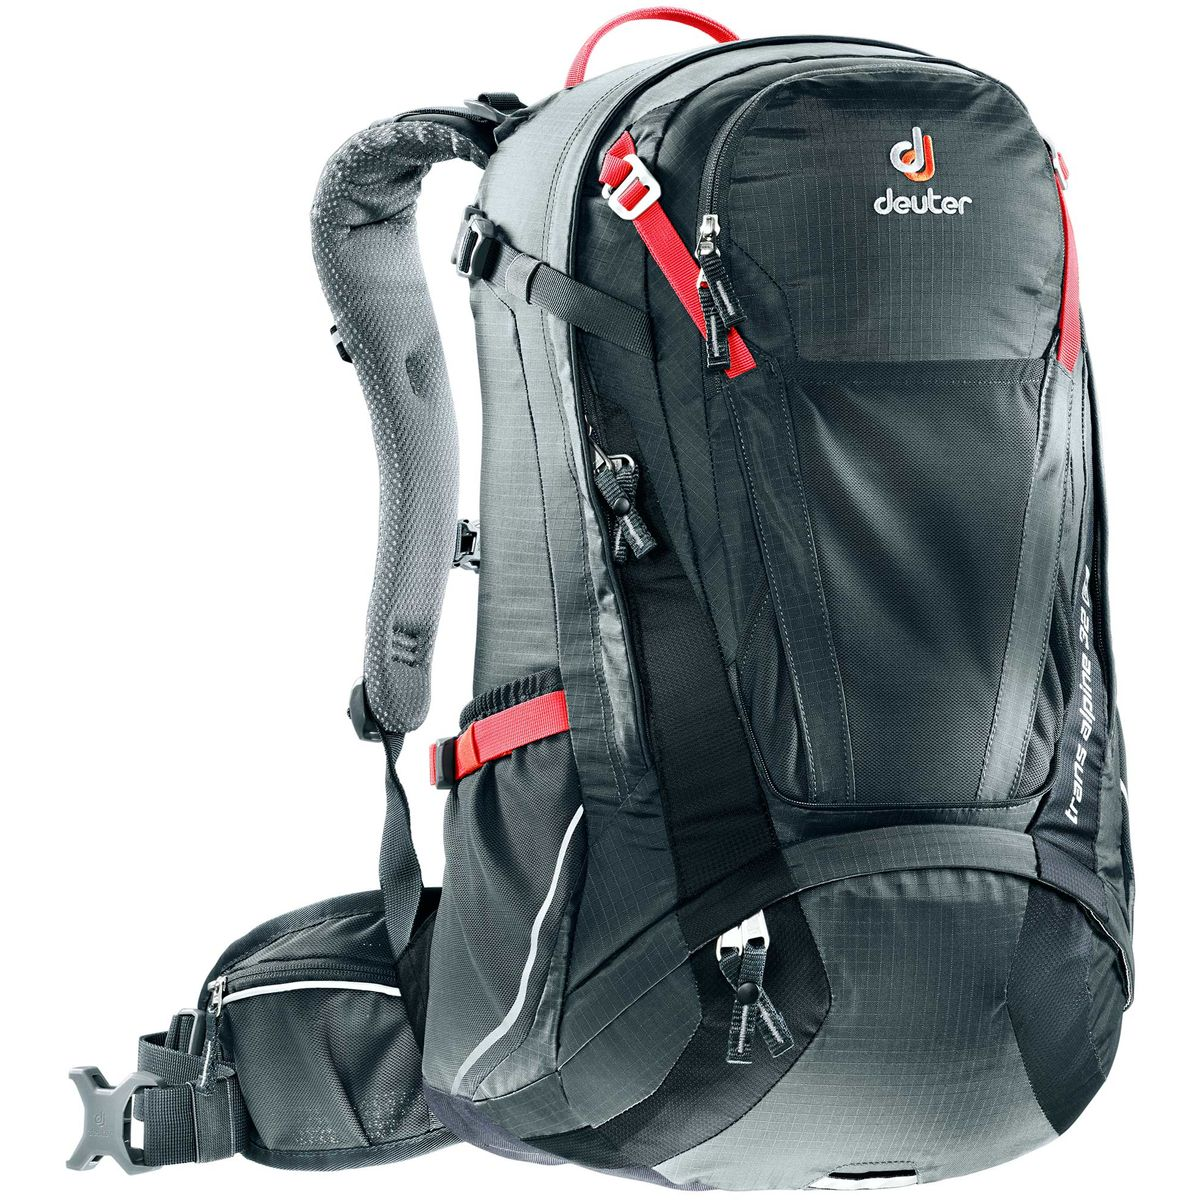 TRANS ALPINE 32 EL backpack